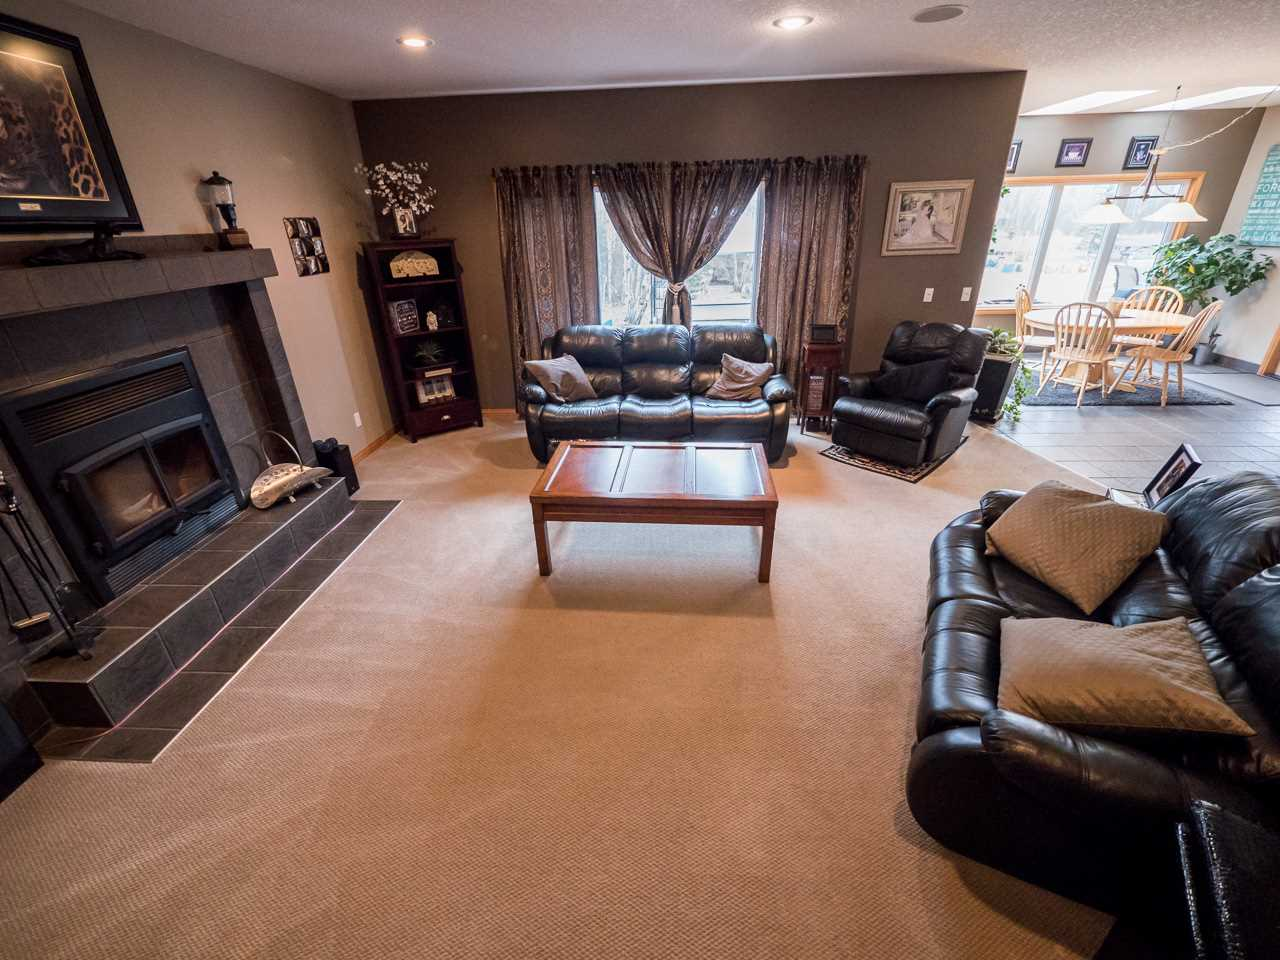 Photo 10: 51543 RR 220: Rural Strathcona County House for sale : MLS(r) # E4072257